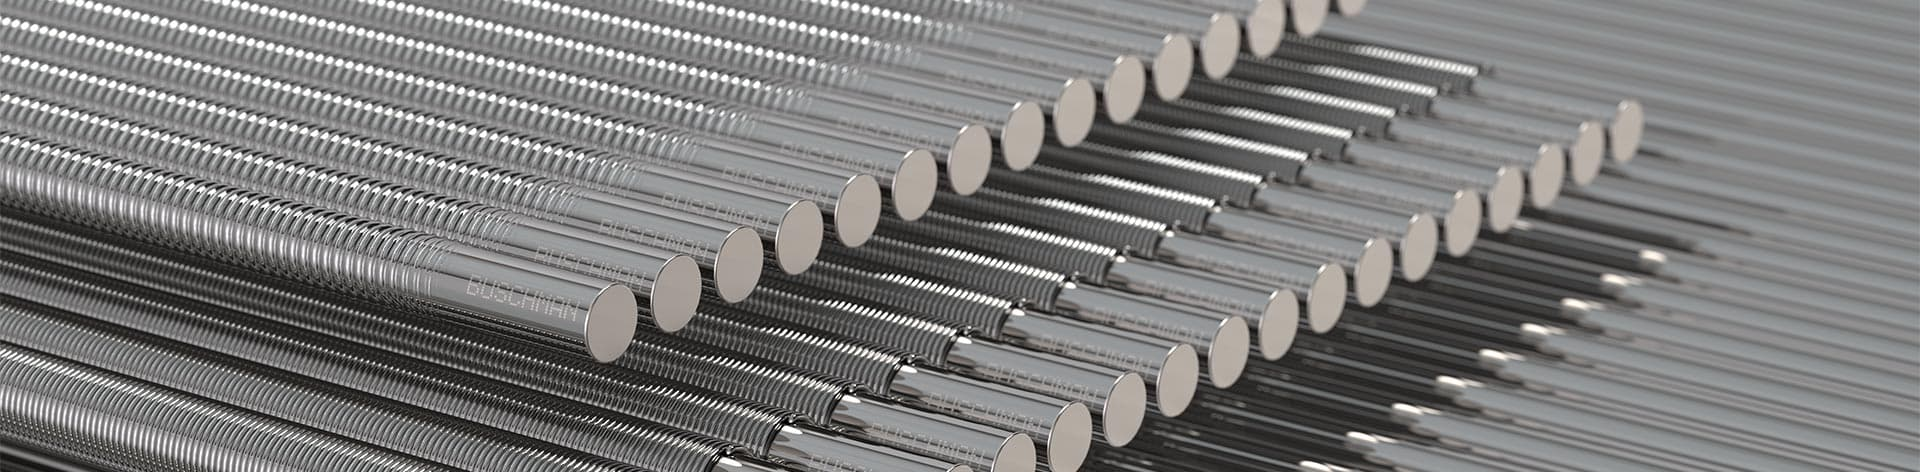 Precision Metering Rods for Any Coating Application